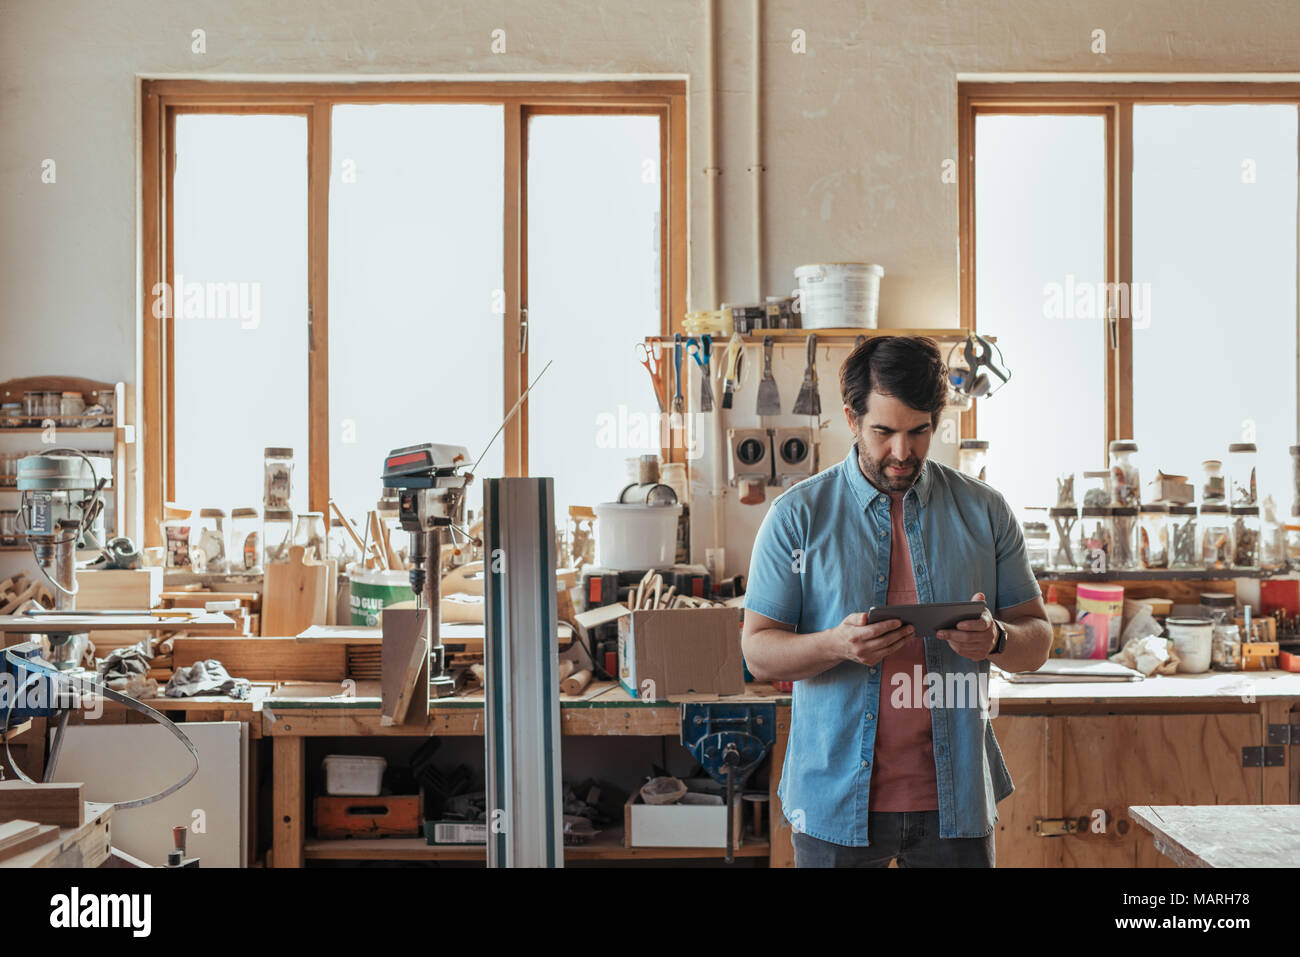 Young carpenter using a digital tablet in his workshop - Stock Image